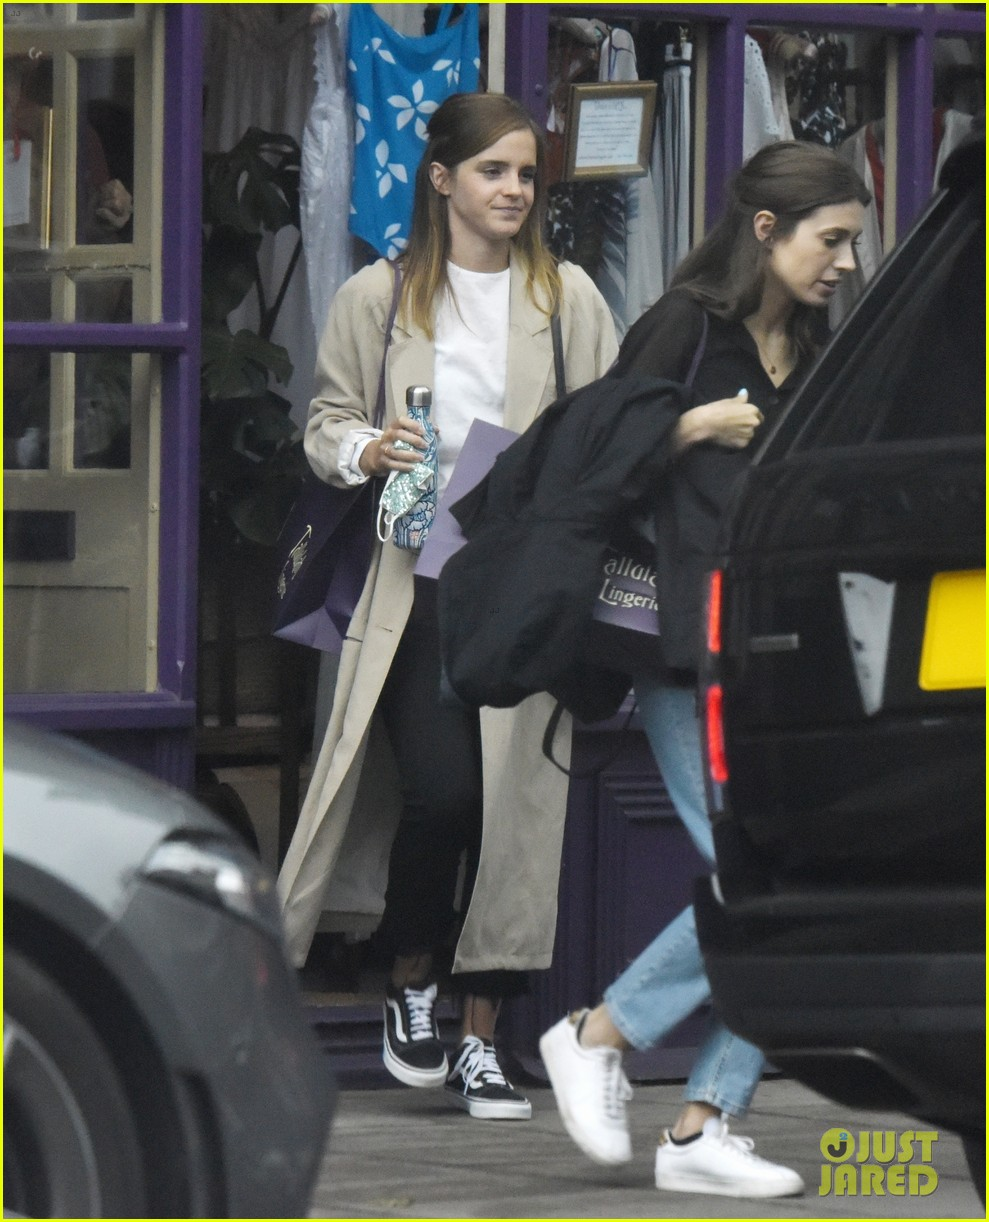 Emma Watson Goes Lingerie Shopping With A Friend In London Photo 4468728 Emma Watson Pictures Just Jared